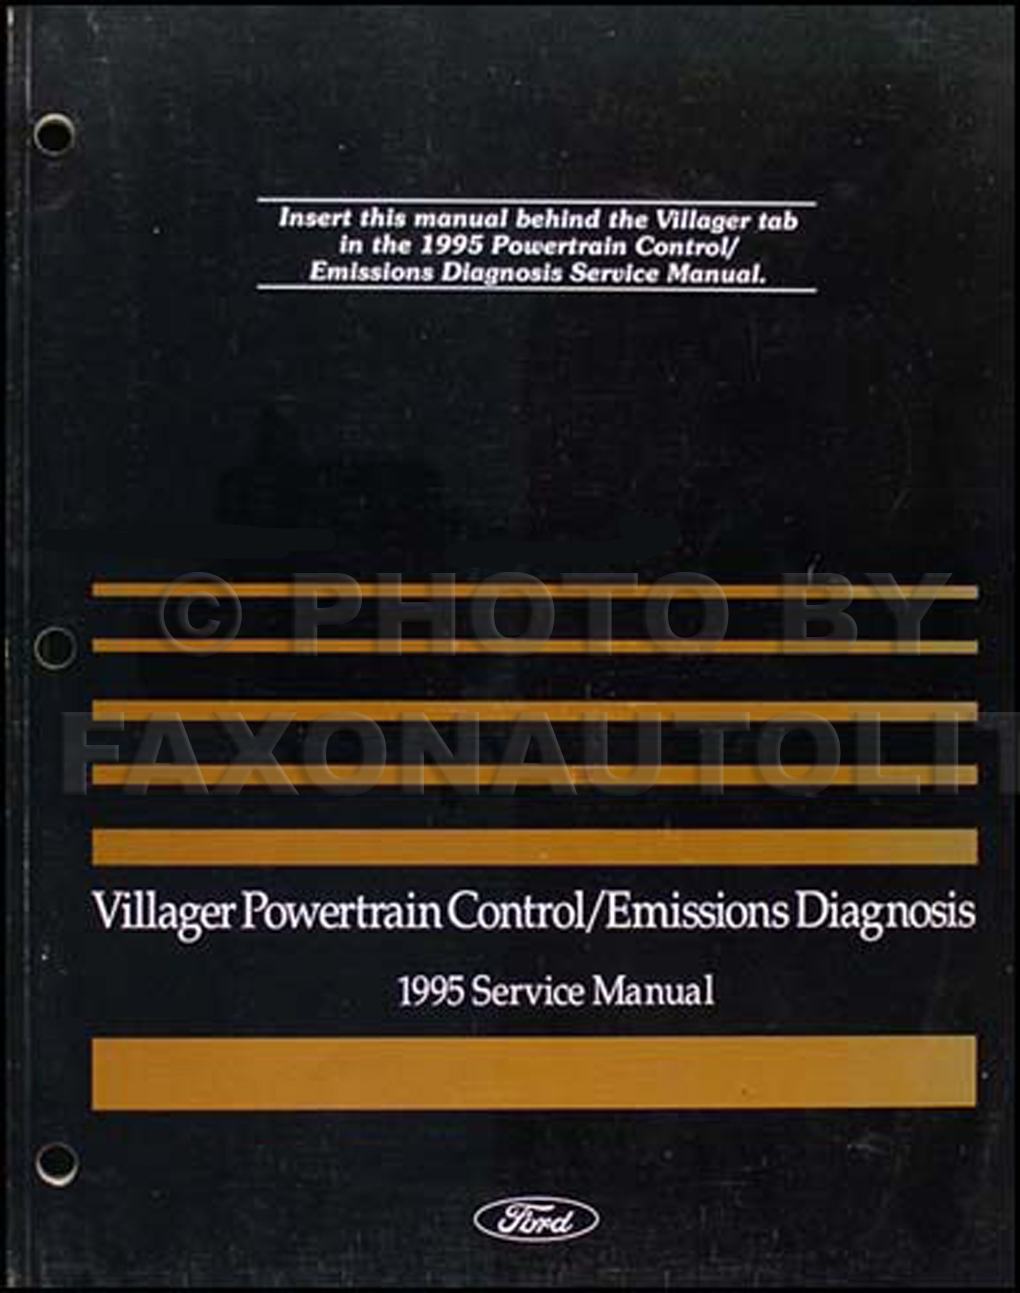 1995 Mercury Villager Engine & Emissions Diagnosis Manual